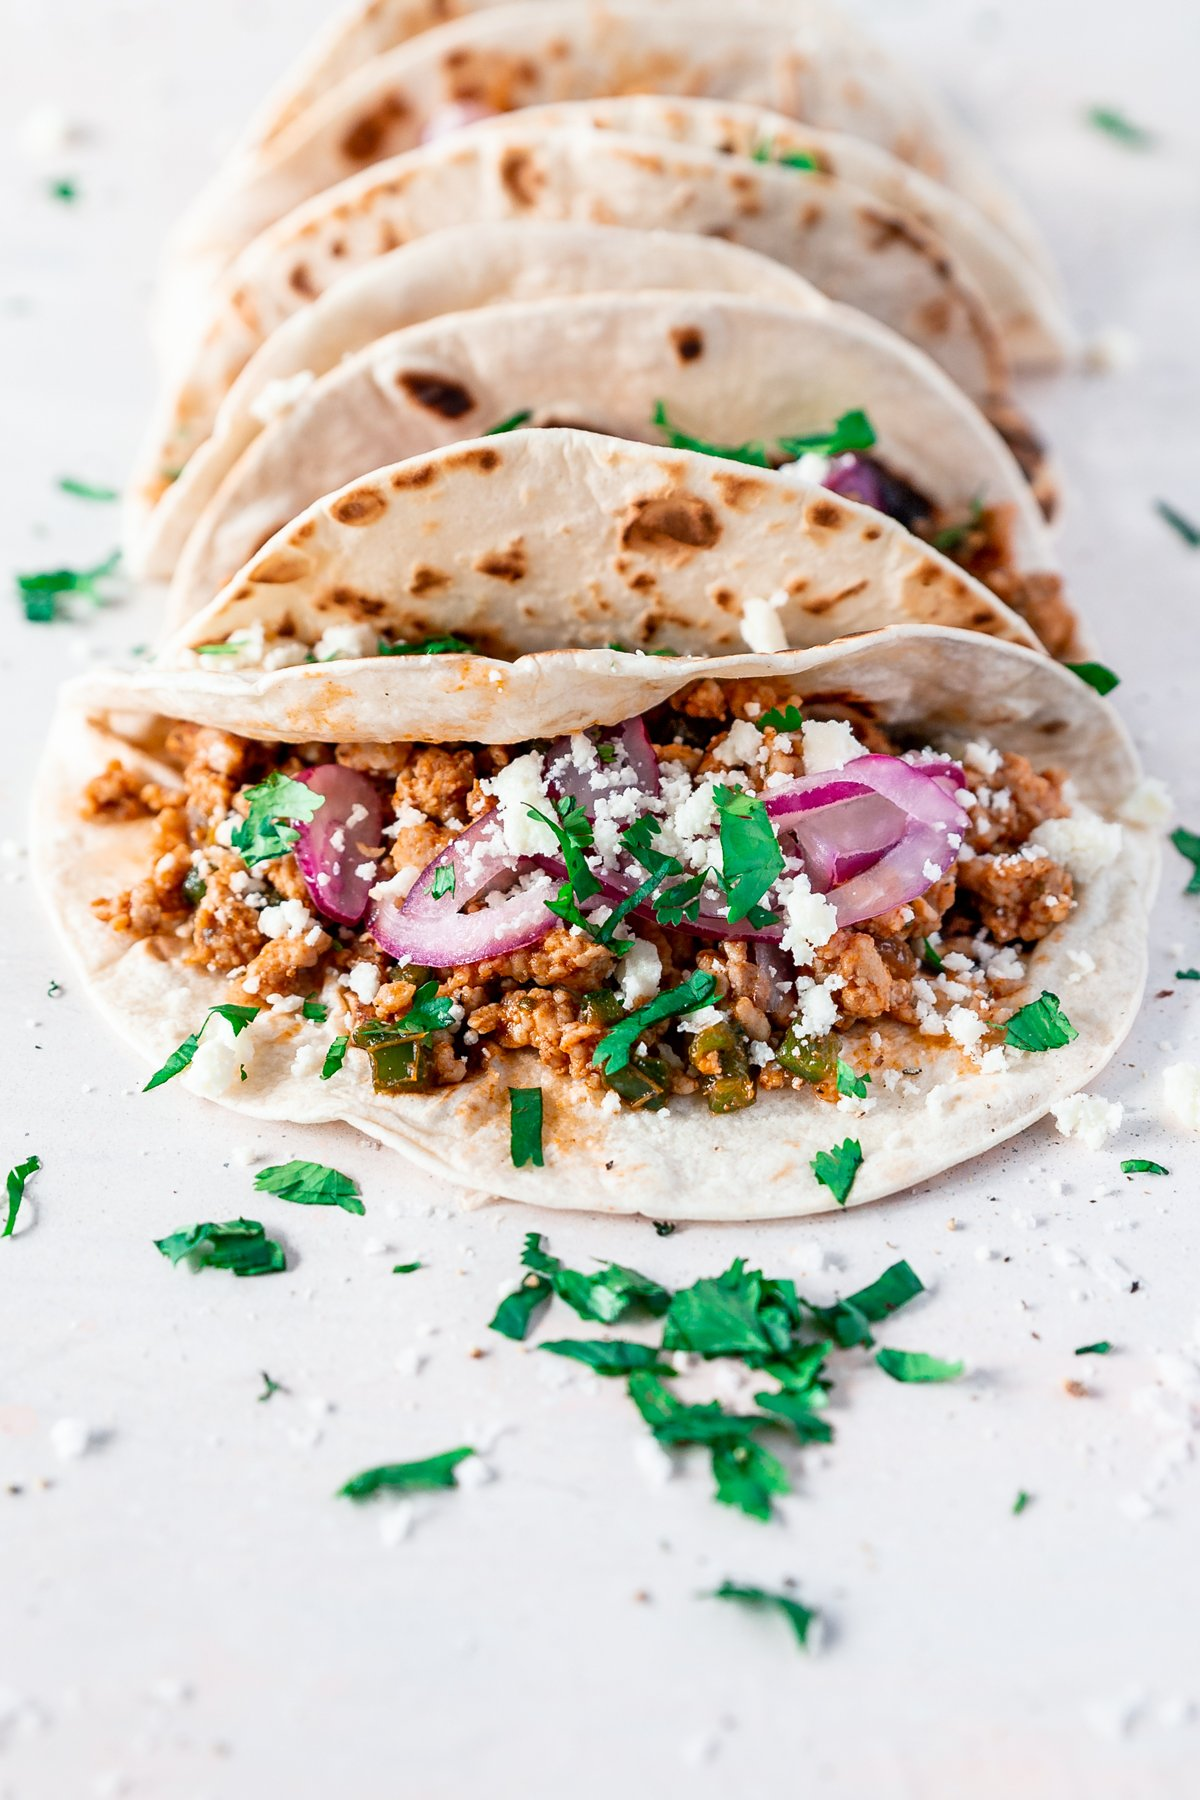 angled view of weeknight pork carnitas tacos by minnesota food blogger a simple pantry